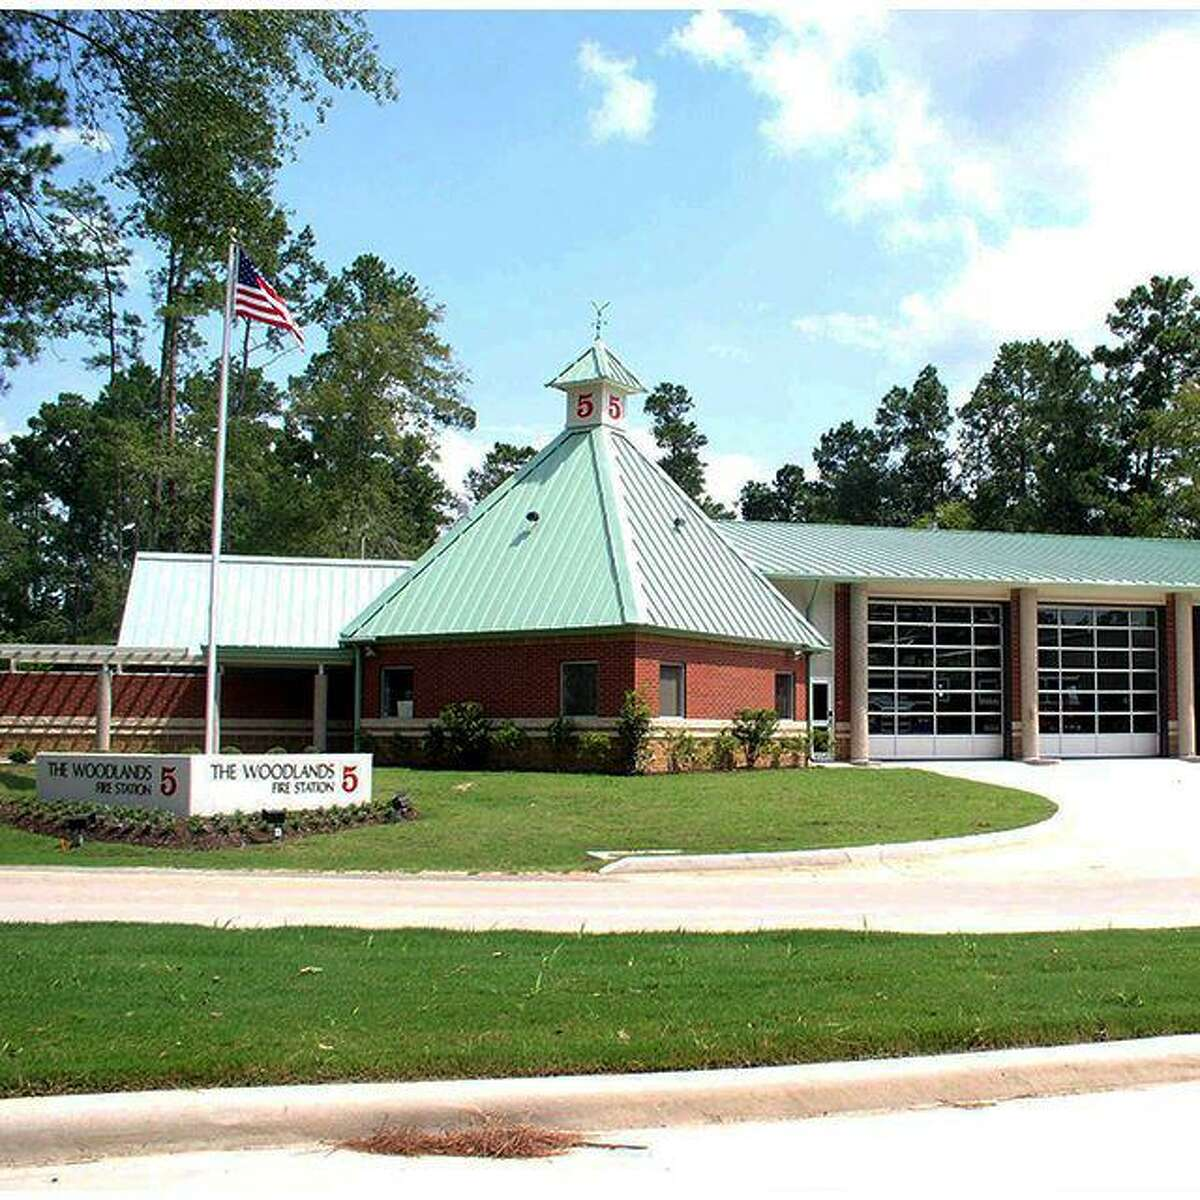 Engineering assessments of the structural damage to The Woodlands Fire Station No. 5 were presented to the township Board of Directors on Oct. 30. The station has slab and foundation issues that has caused uneven floors, cracking and other issues.